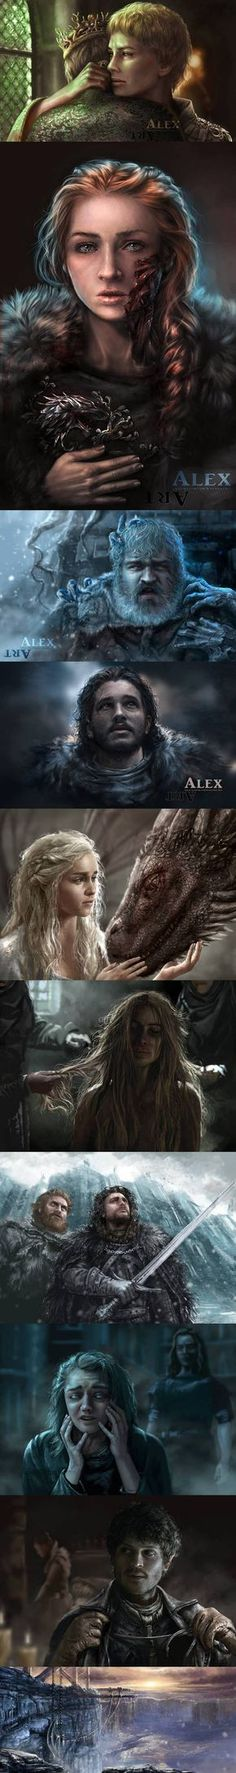 game of thrones alex art